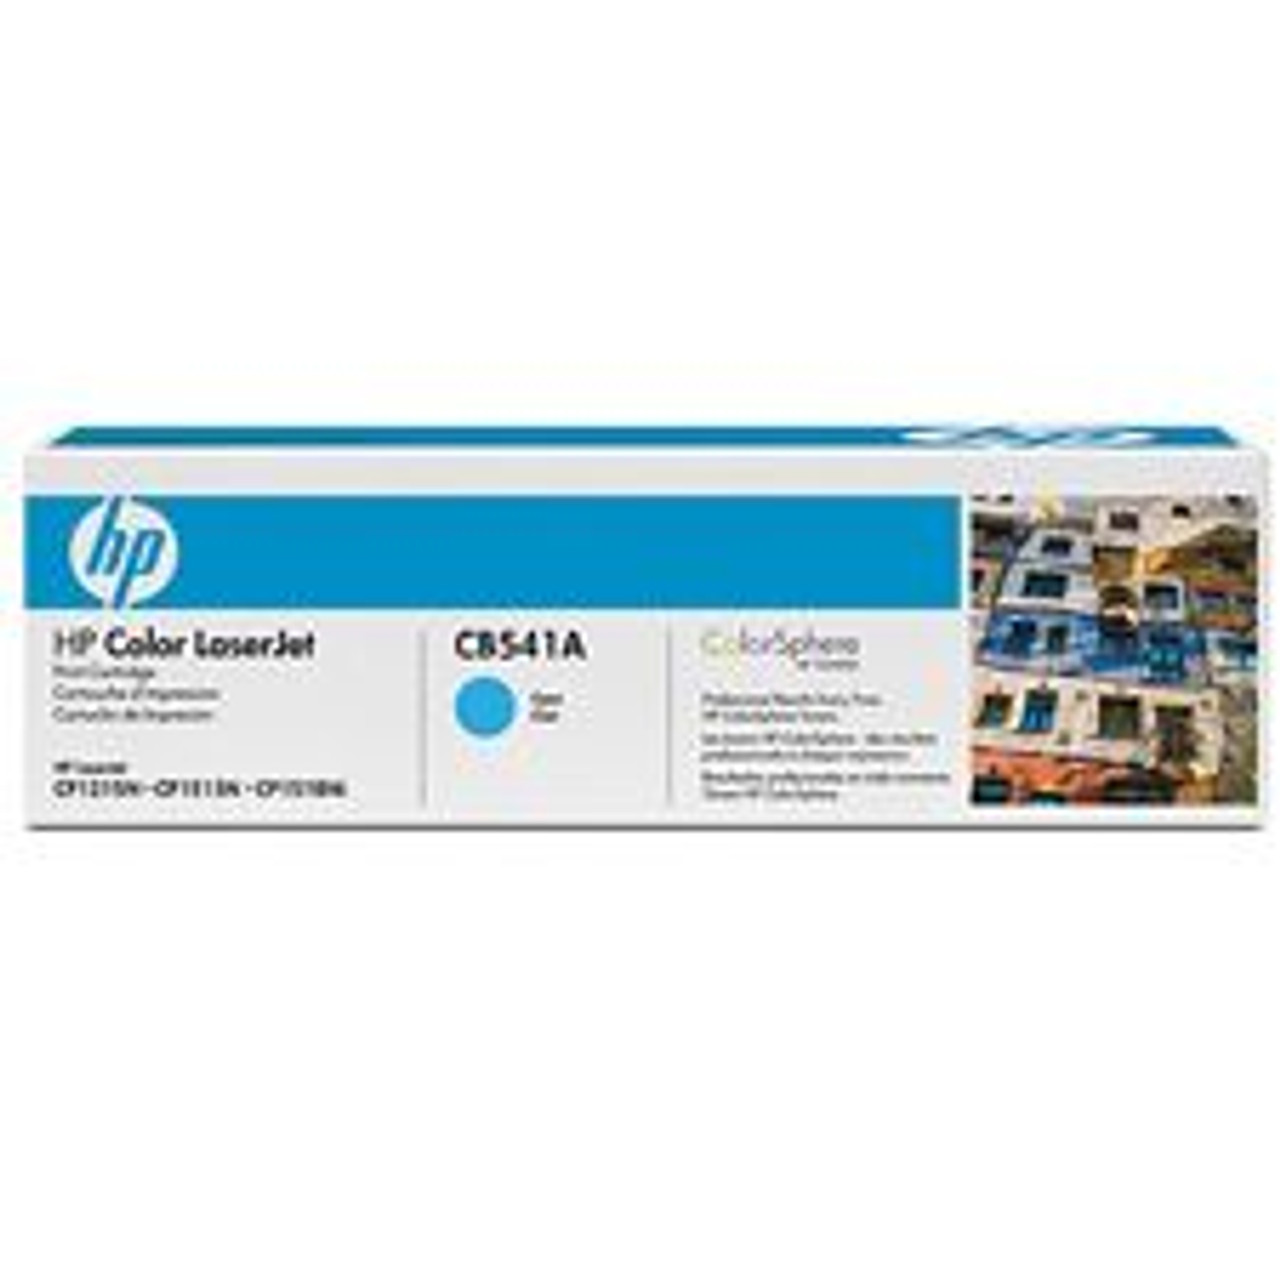 Image for HP Color Laserjet Cyan Cartridge (CB541A) CX Computer Superstore